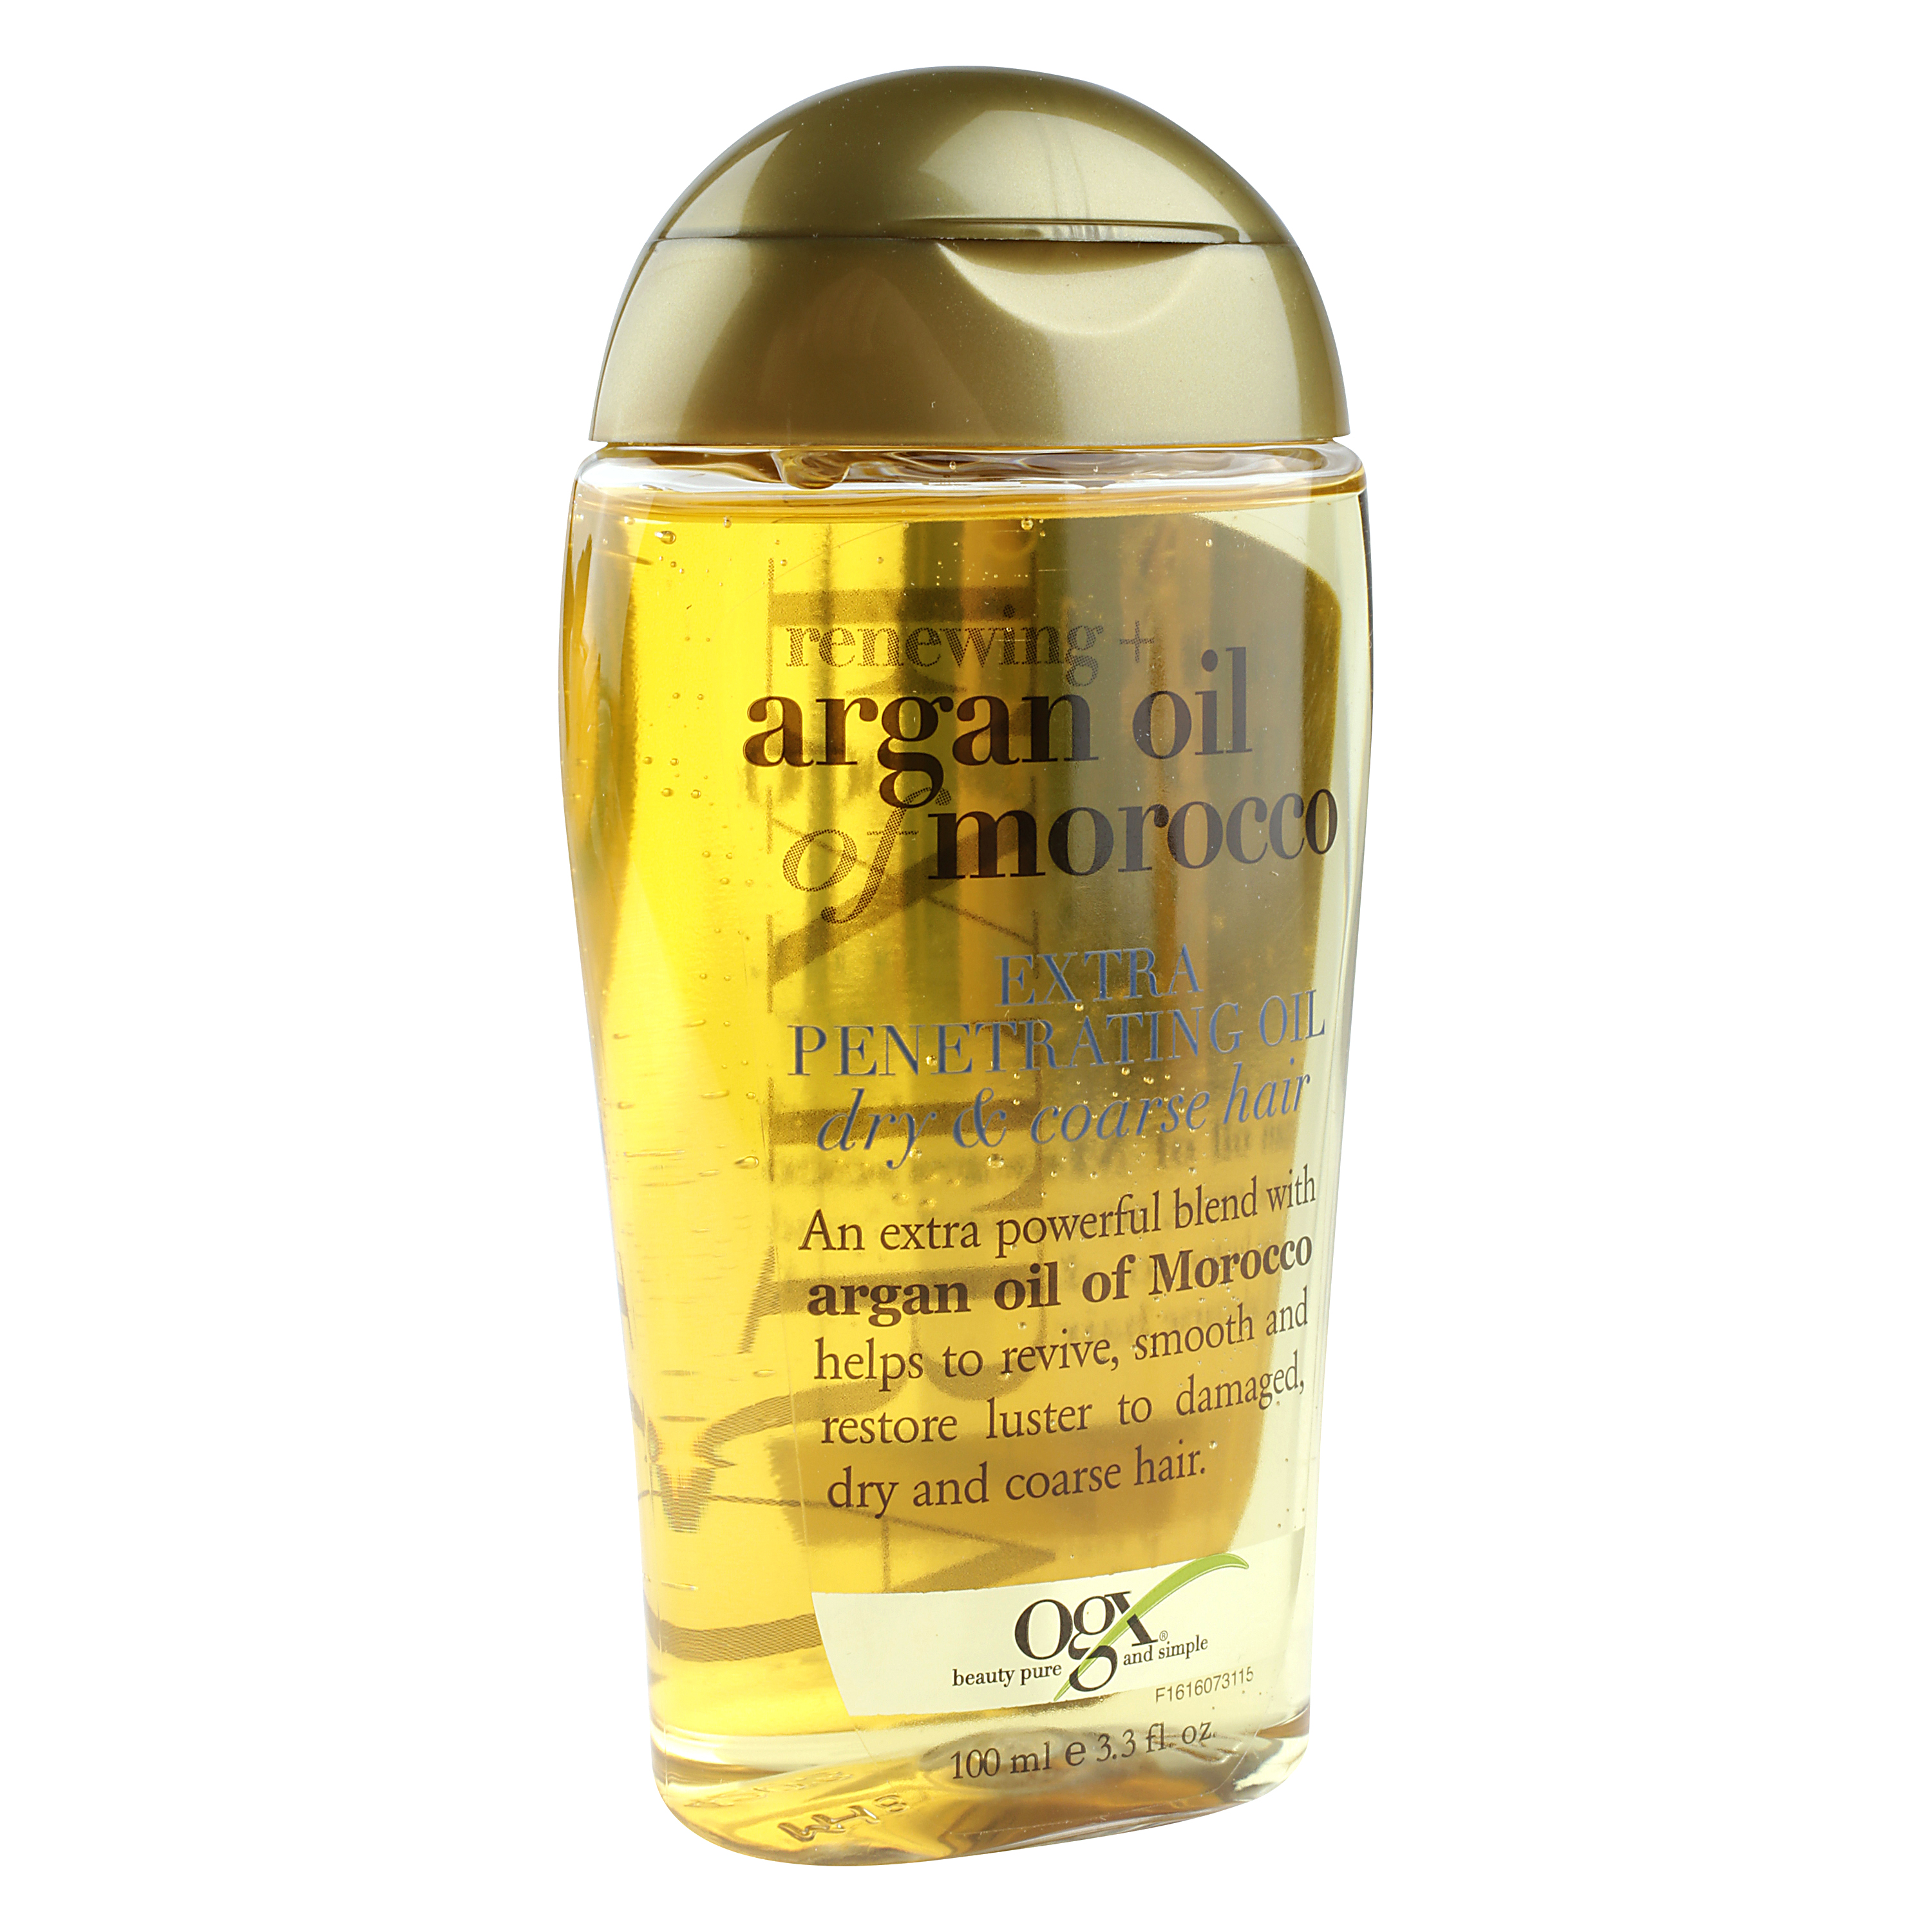 OGX Renewing Moroccan Argan Oil Extra Penetrating Oil, Dry & Course Hair, 3.3 oz